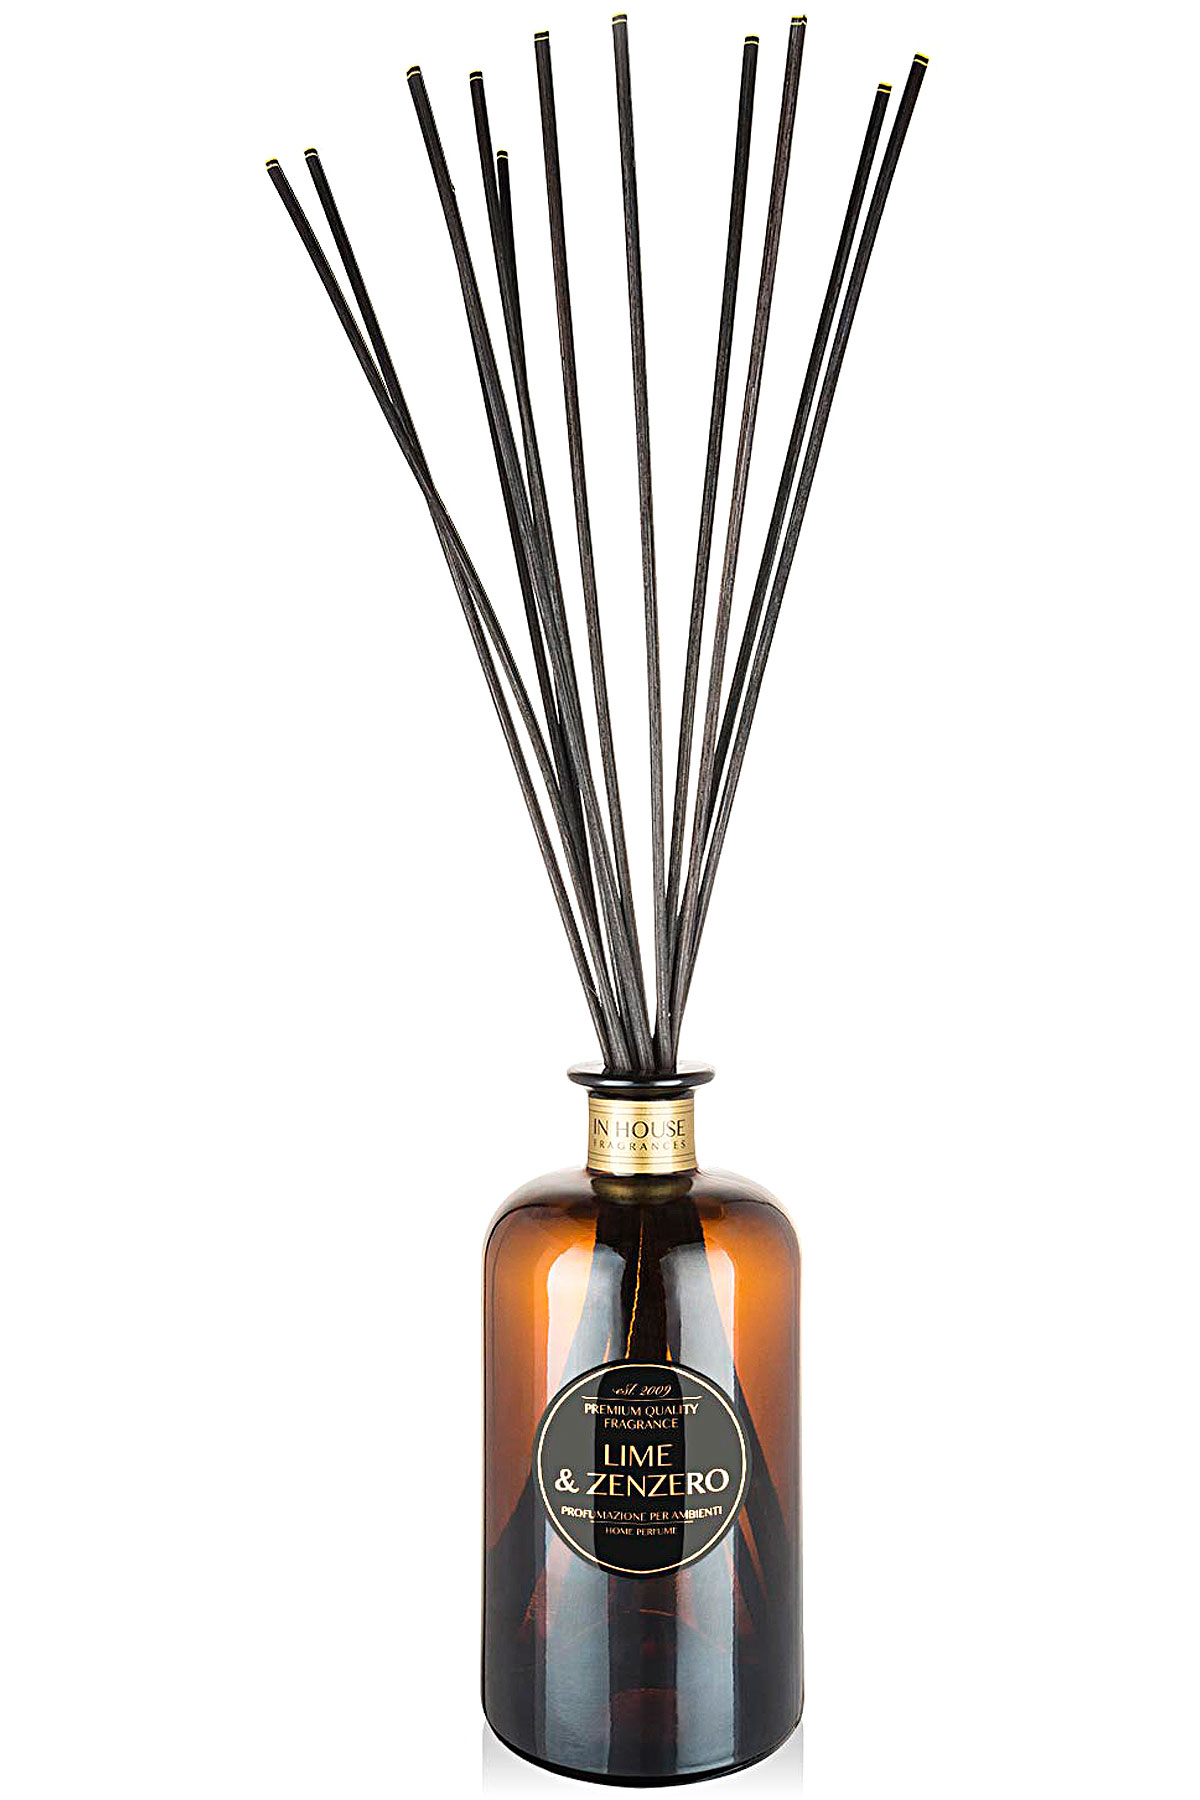 In House Fragrances Home Scents for Men, Lime & Zenzero - Home Diffuser - 500 Ml, 2019, 500 ml